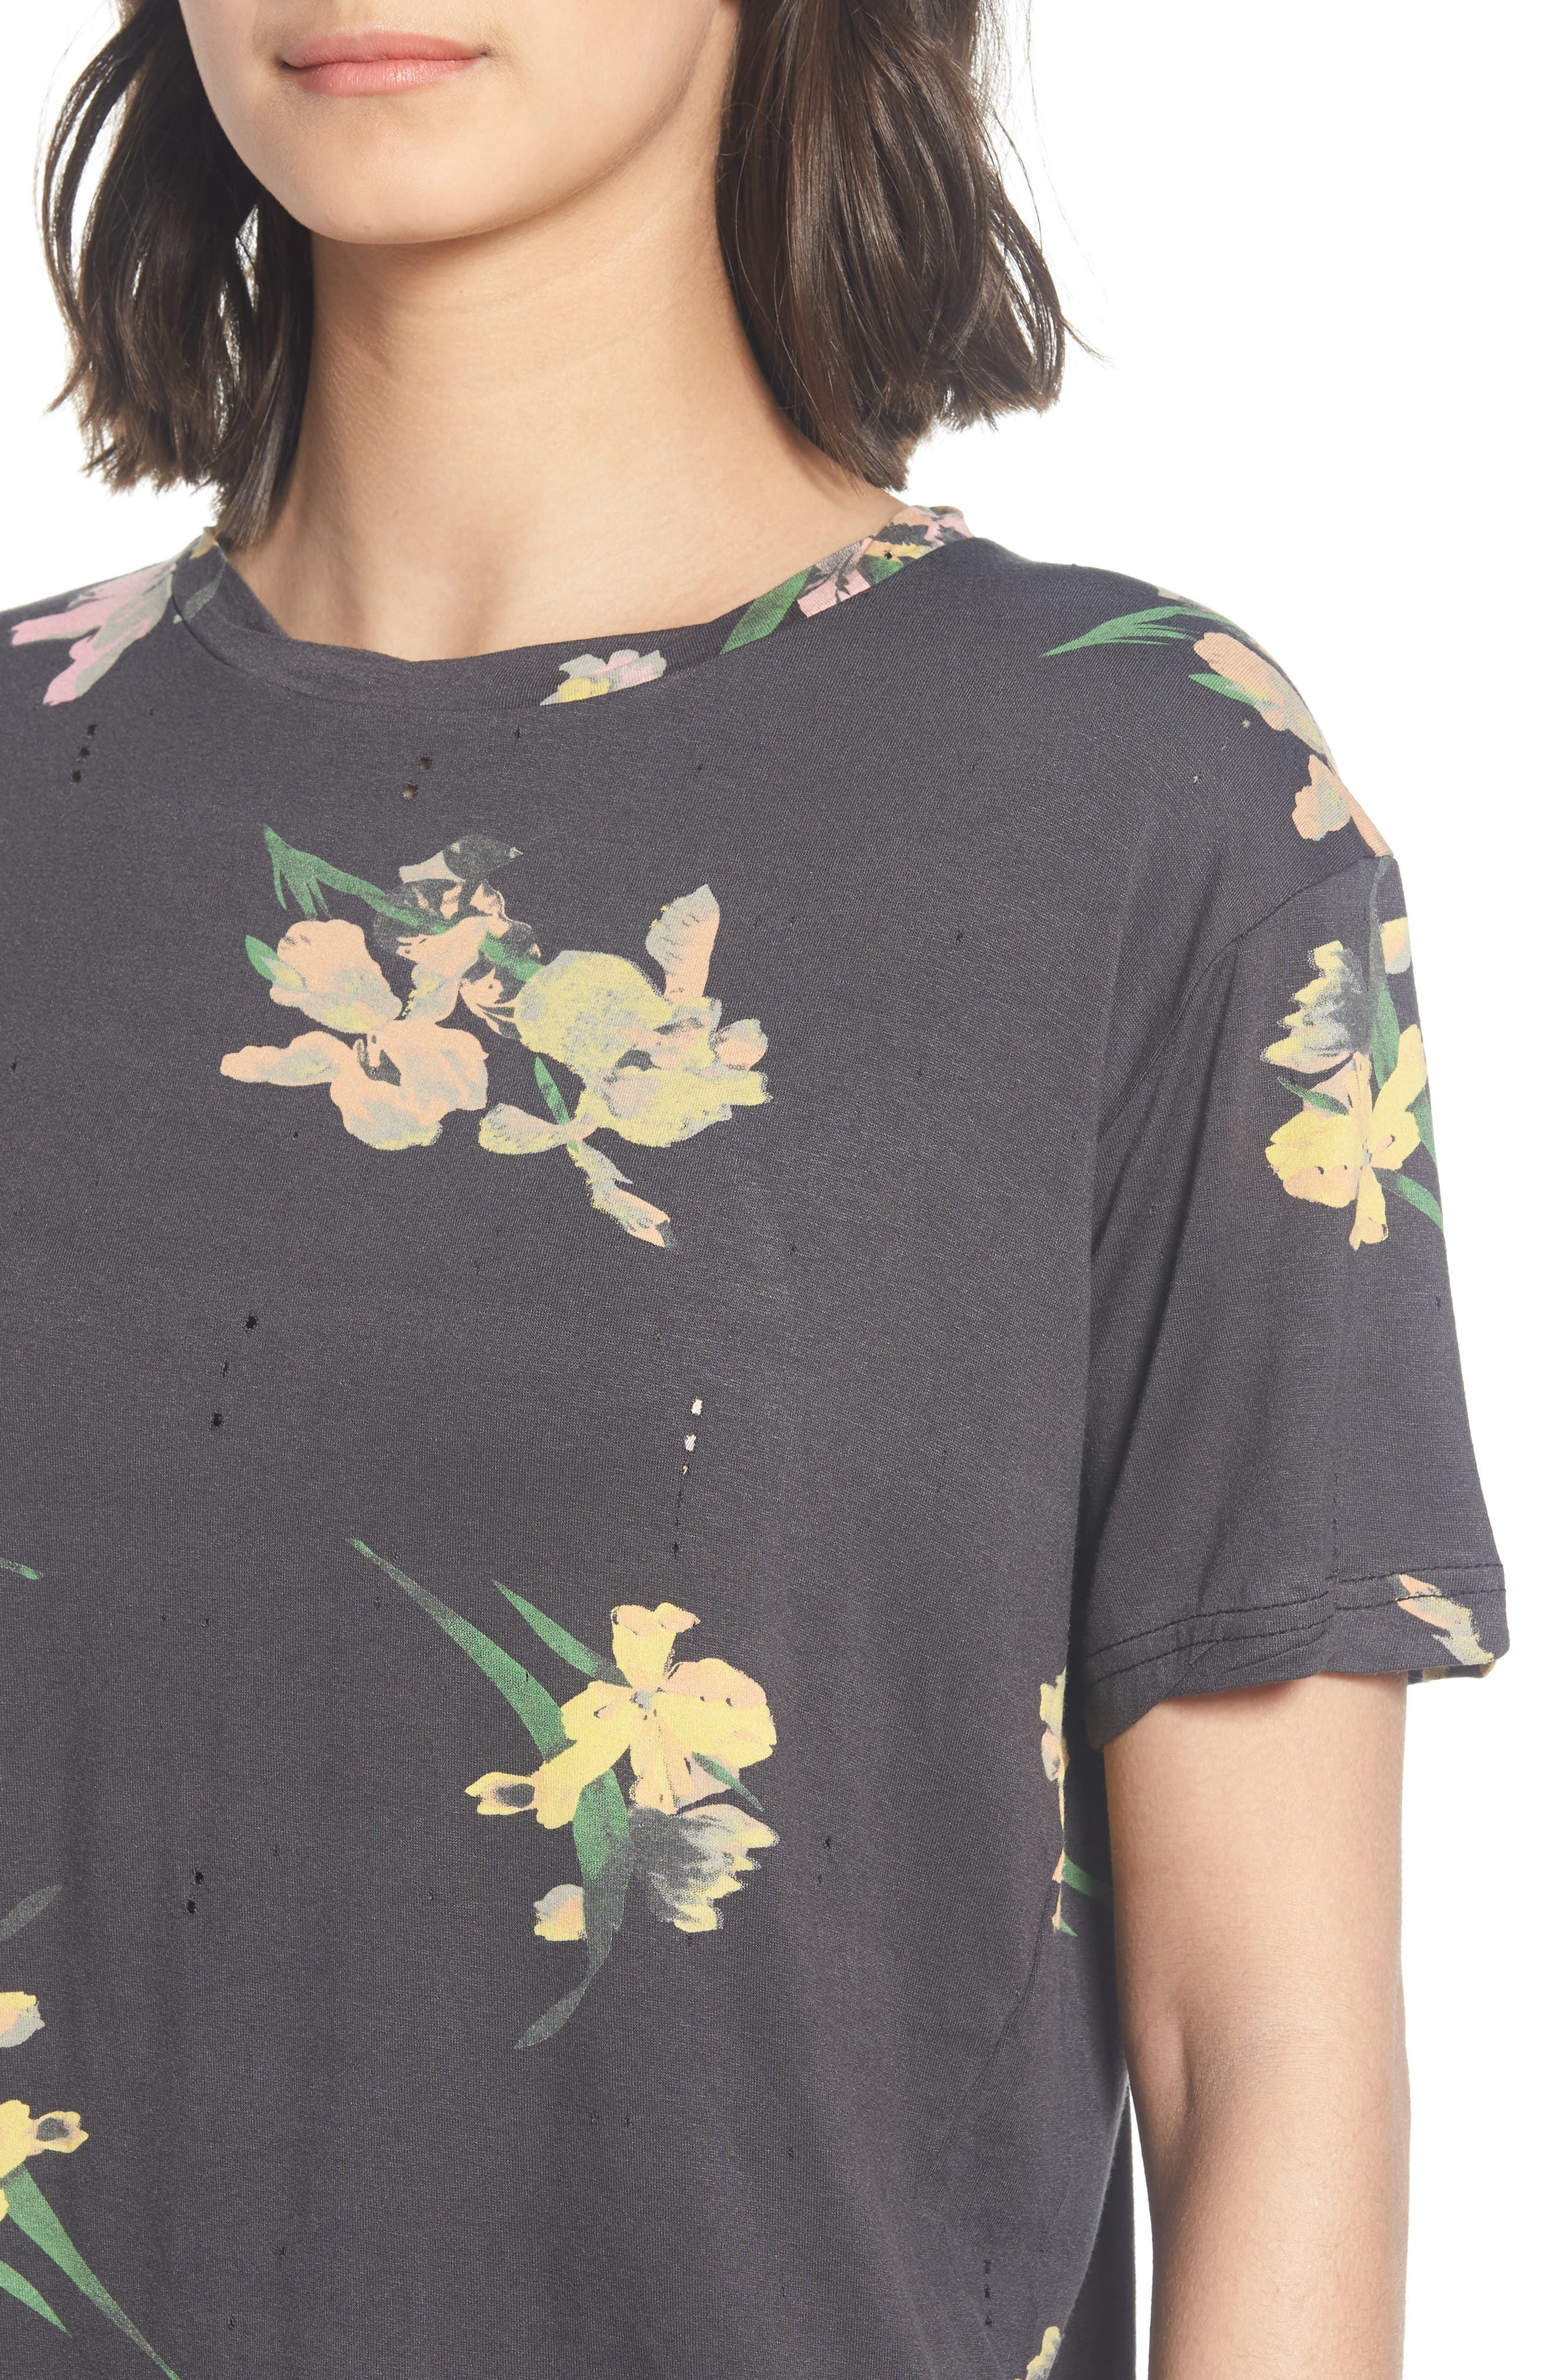 Floral Print Distressed Tee,                             Alternate thumbnail 4, color,                             Black Ground Floral